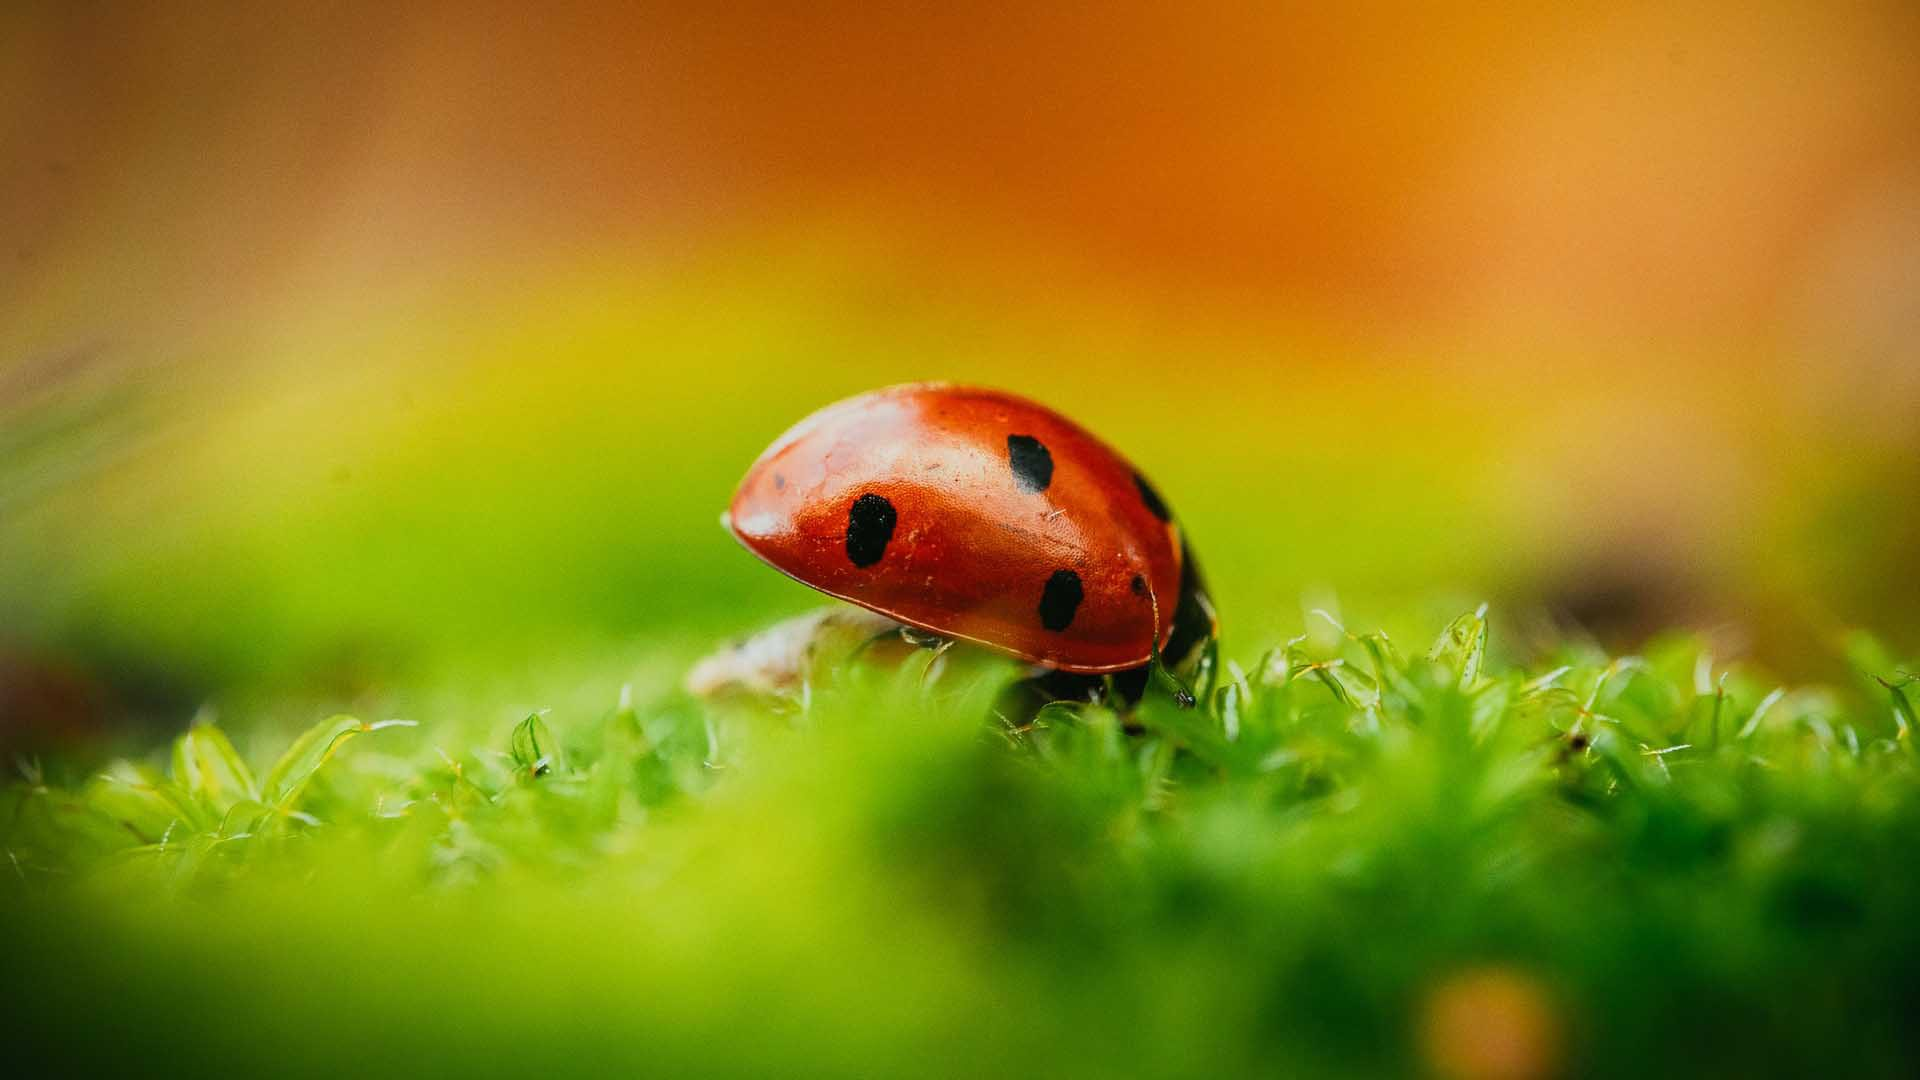 What is depth of field and how can it be used for composition - bokeh obstructing obtrusive details on macro insect photo